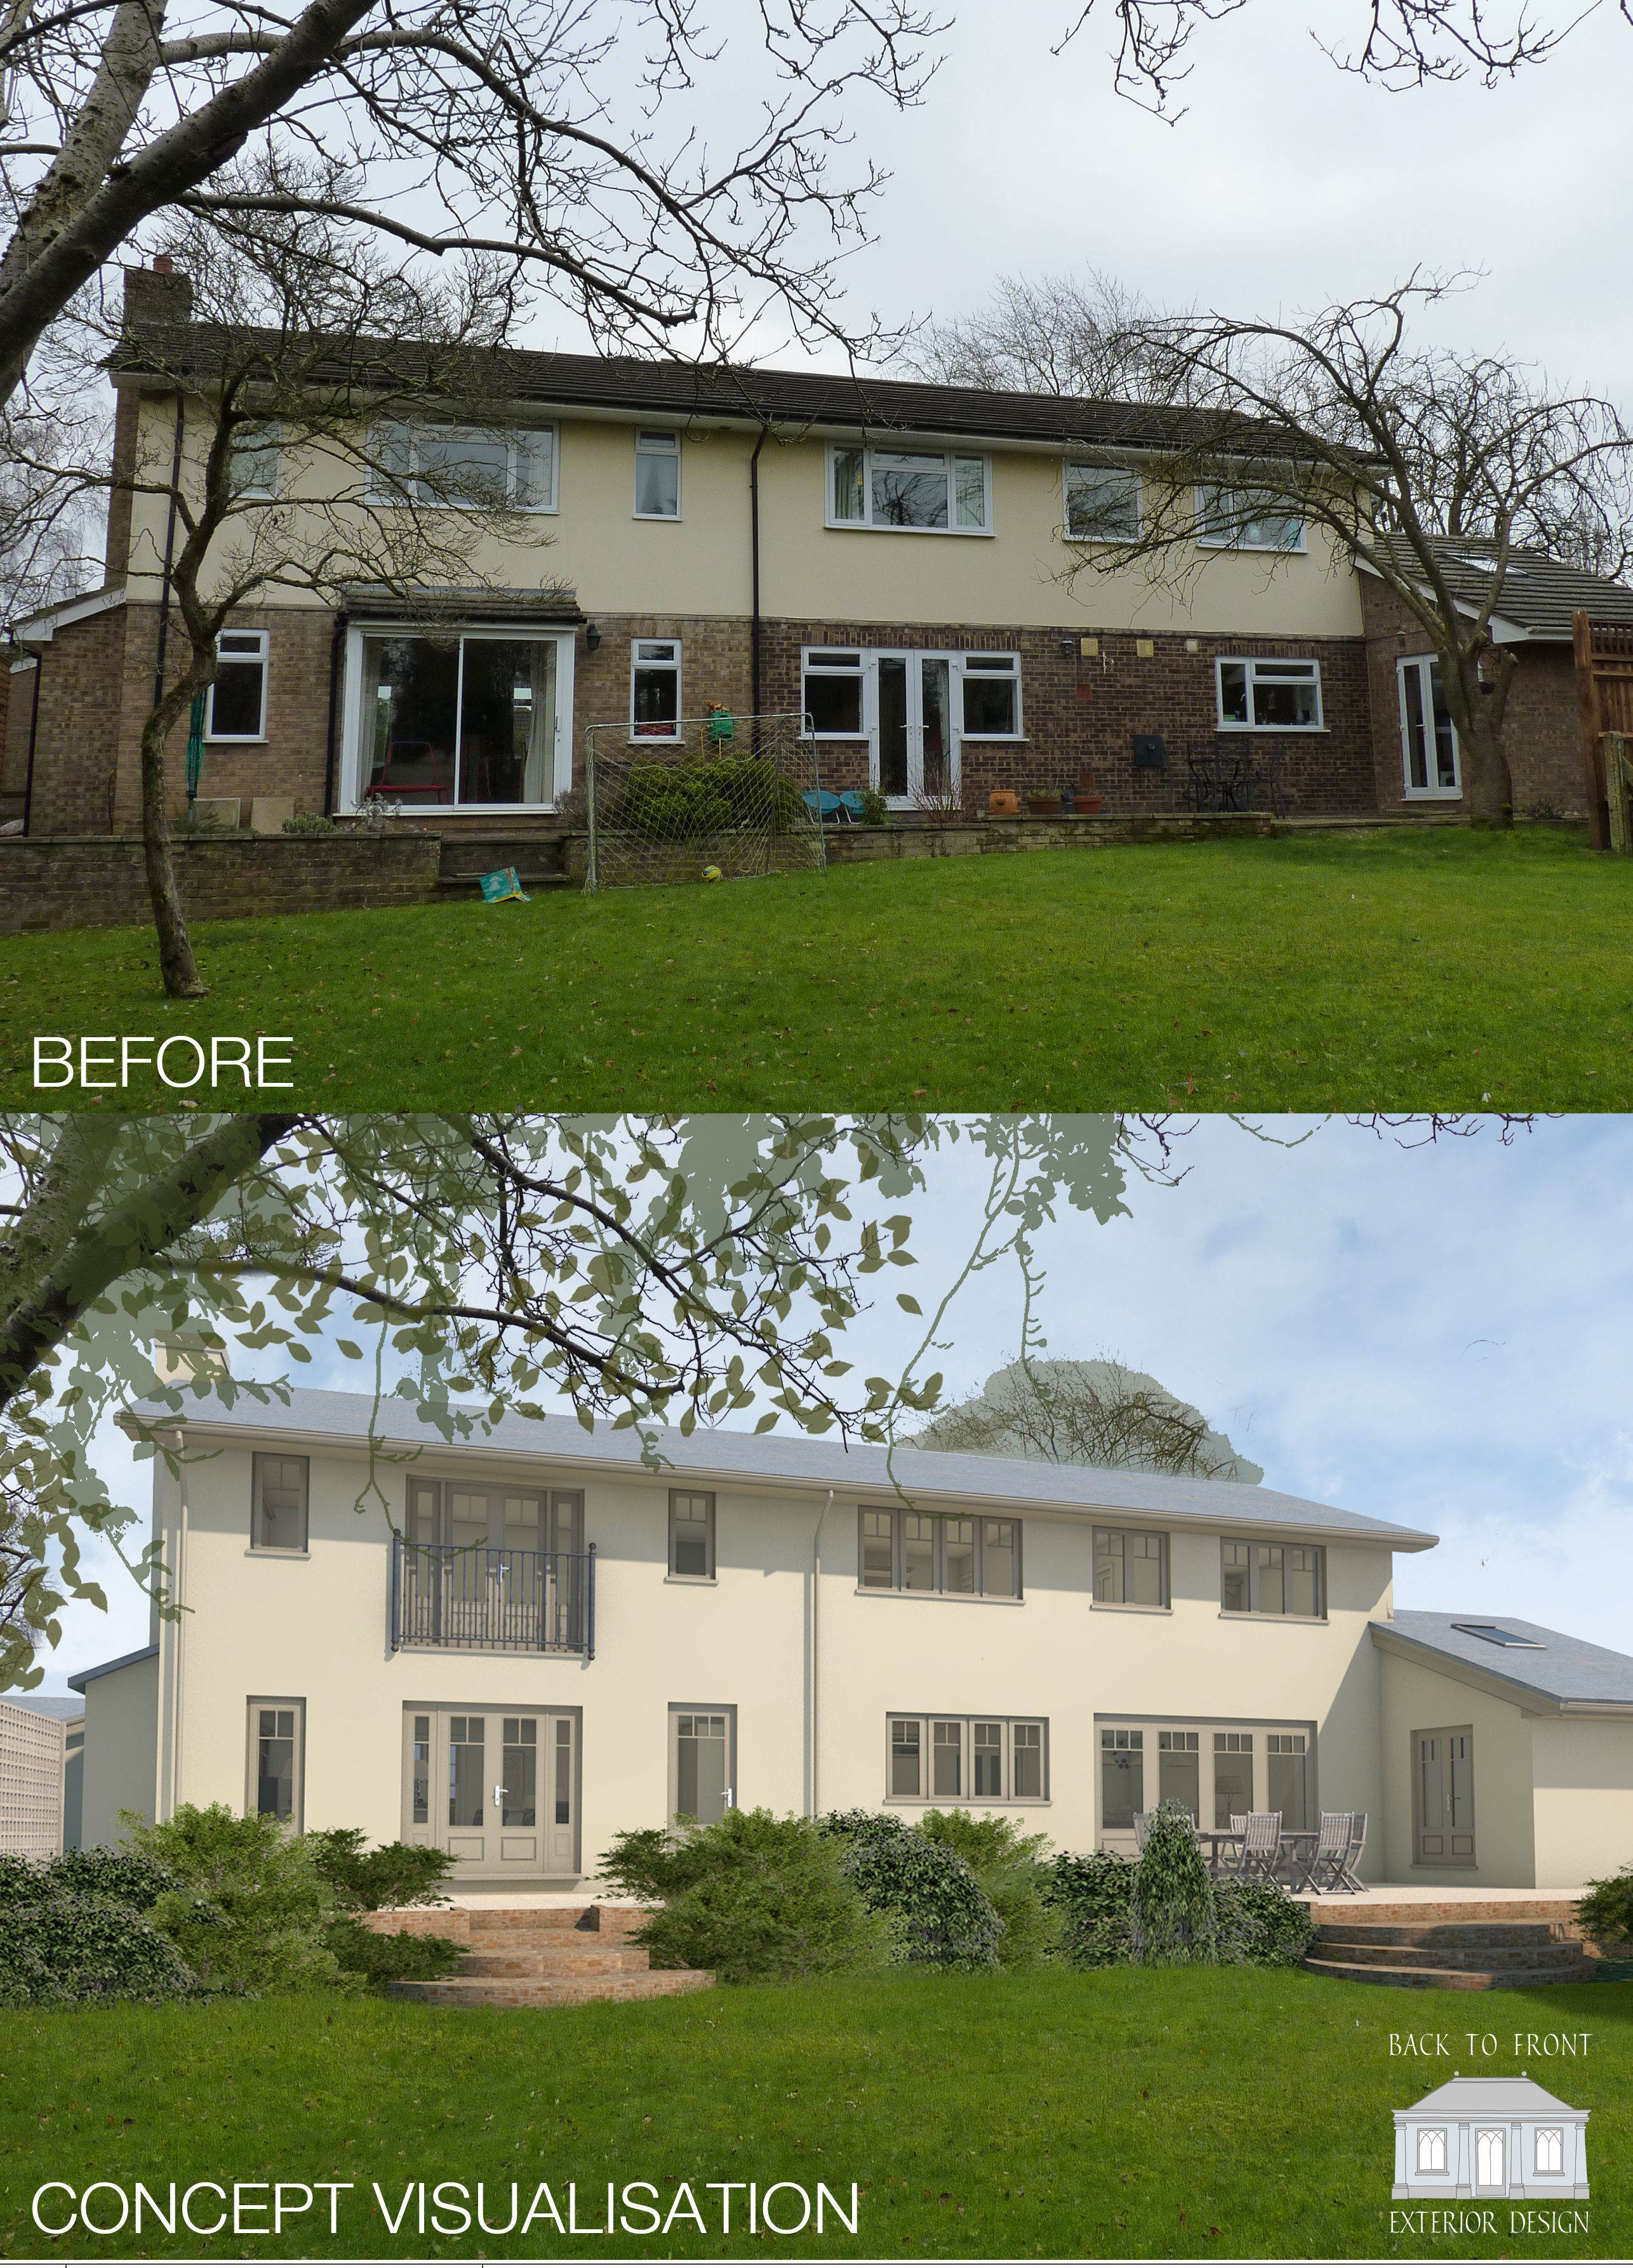 1960 S Exterior From Bland To Grand Exterior Design